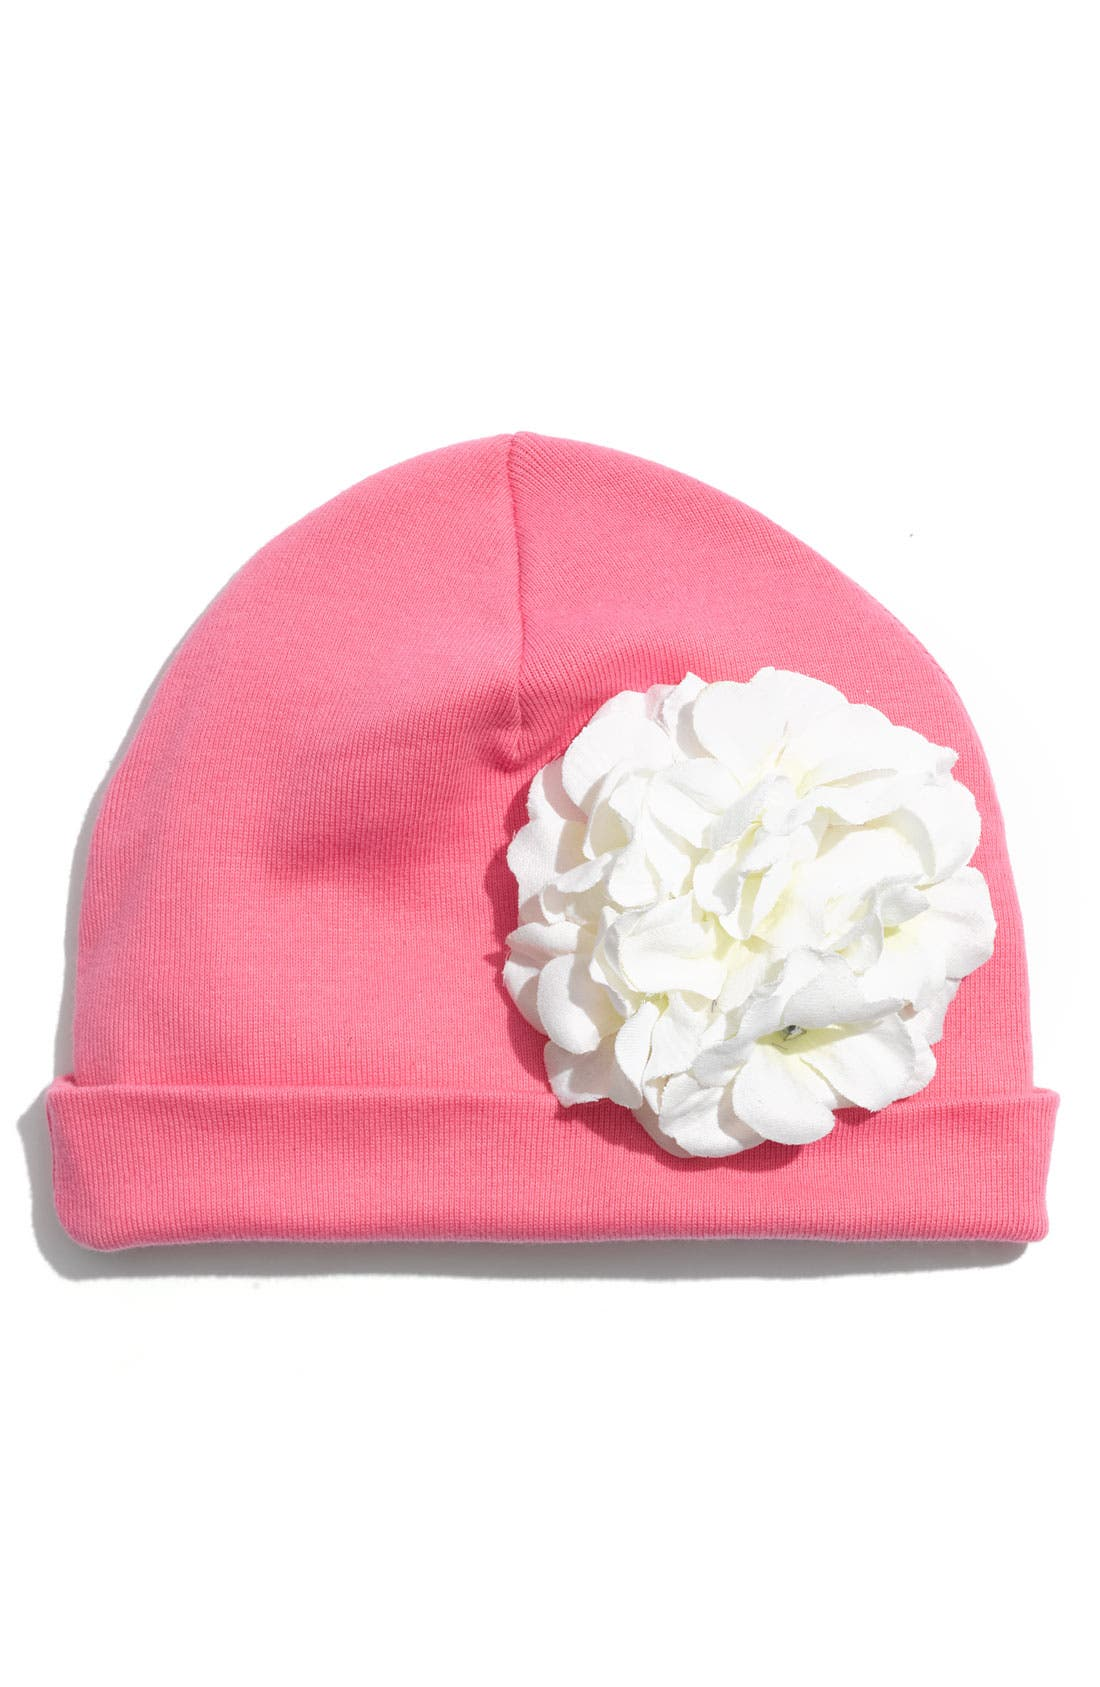 Alternate Image 1 Selected - Jamie Rae Hats Peony Hat (Infant)